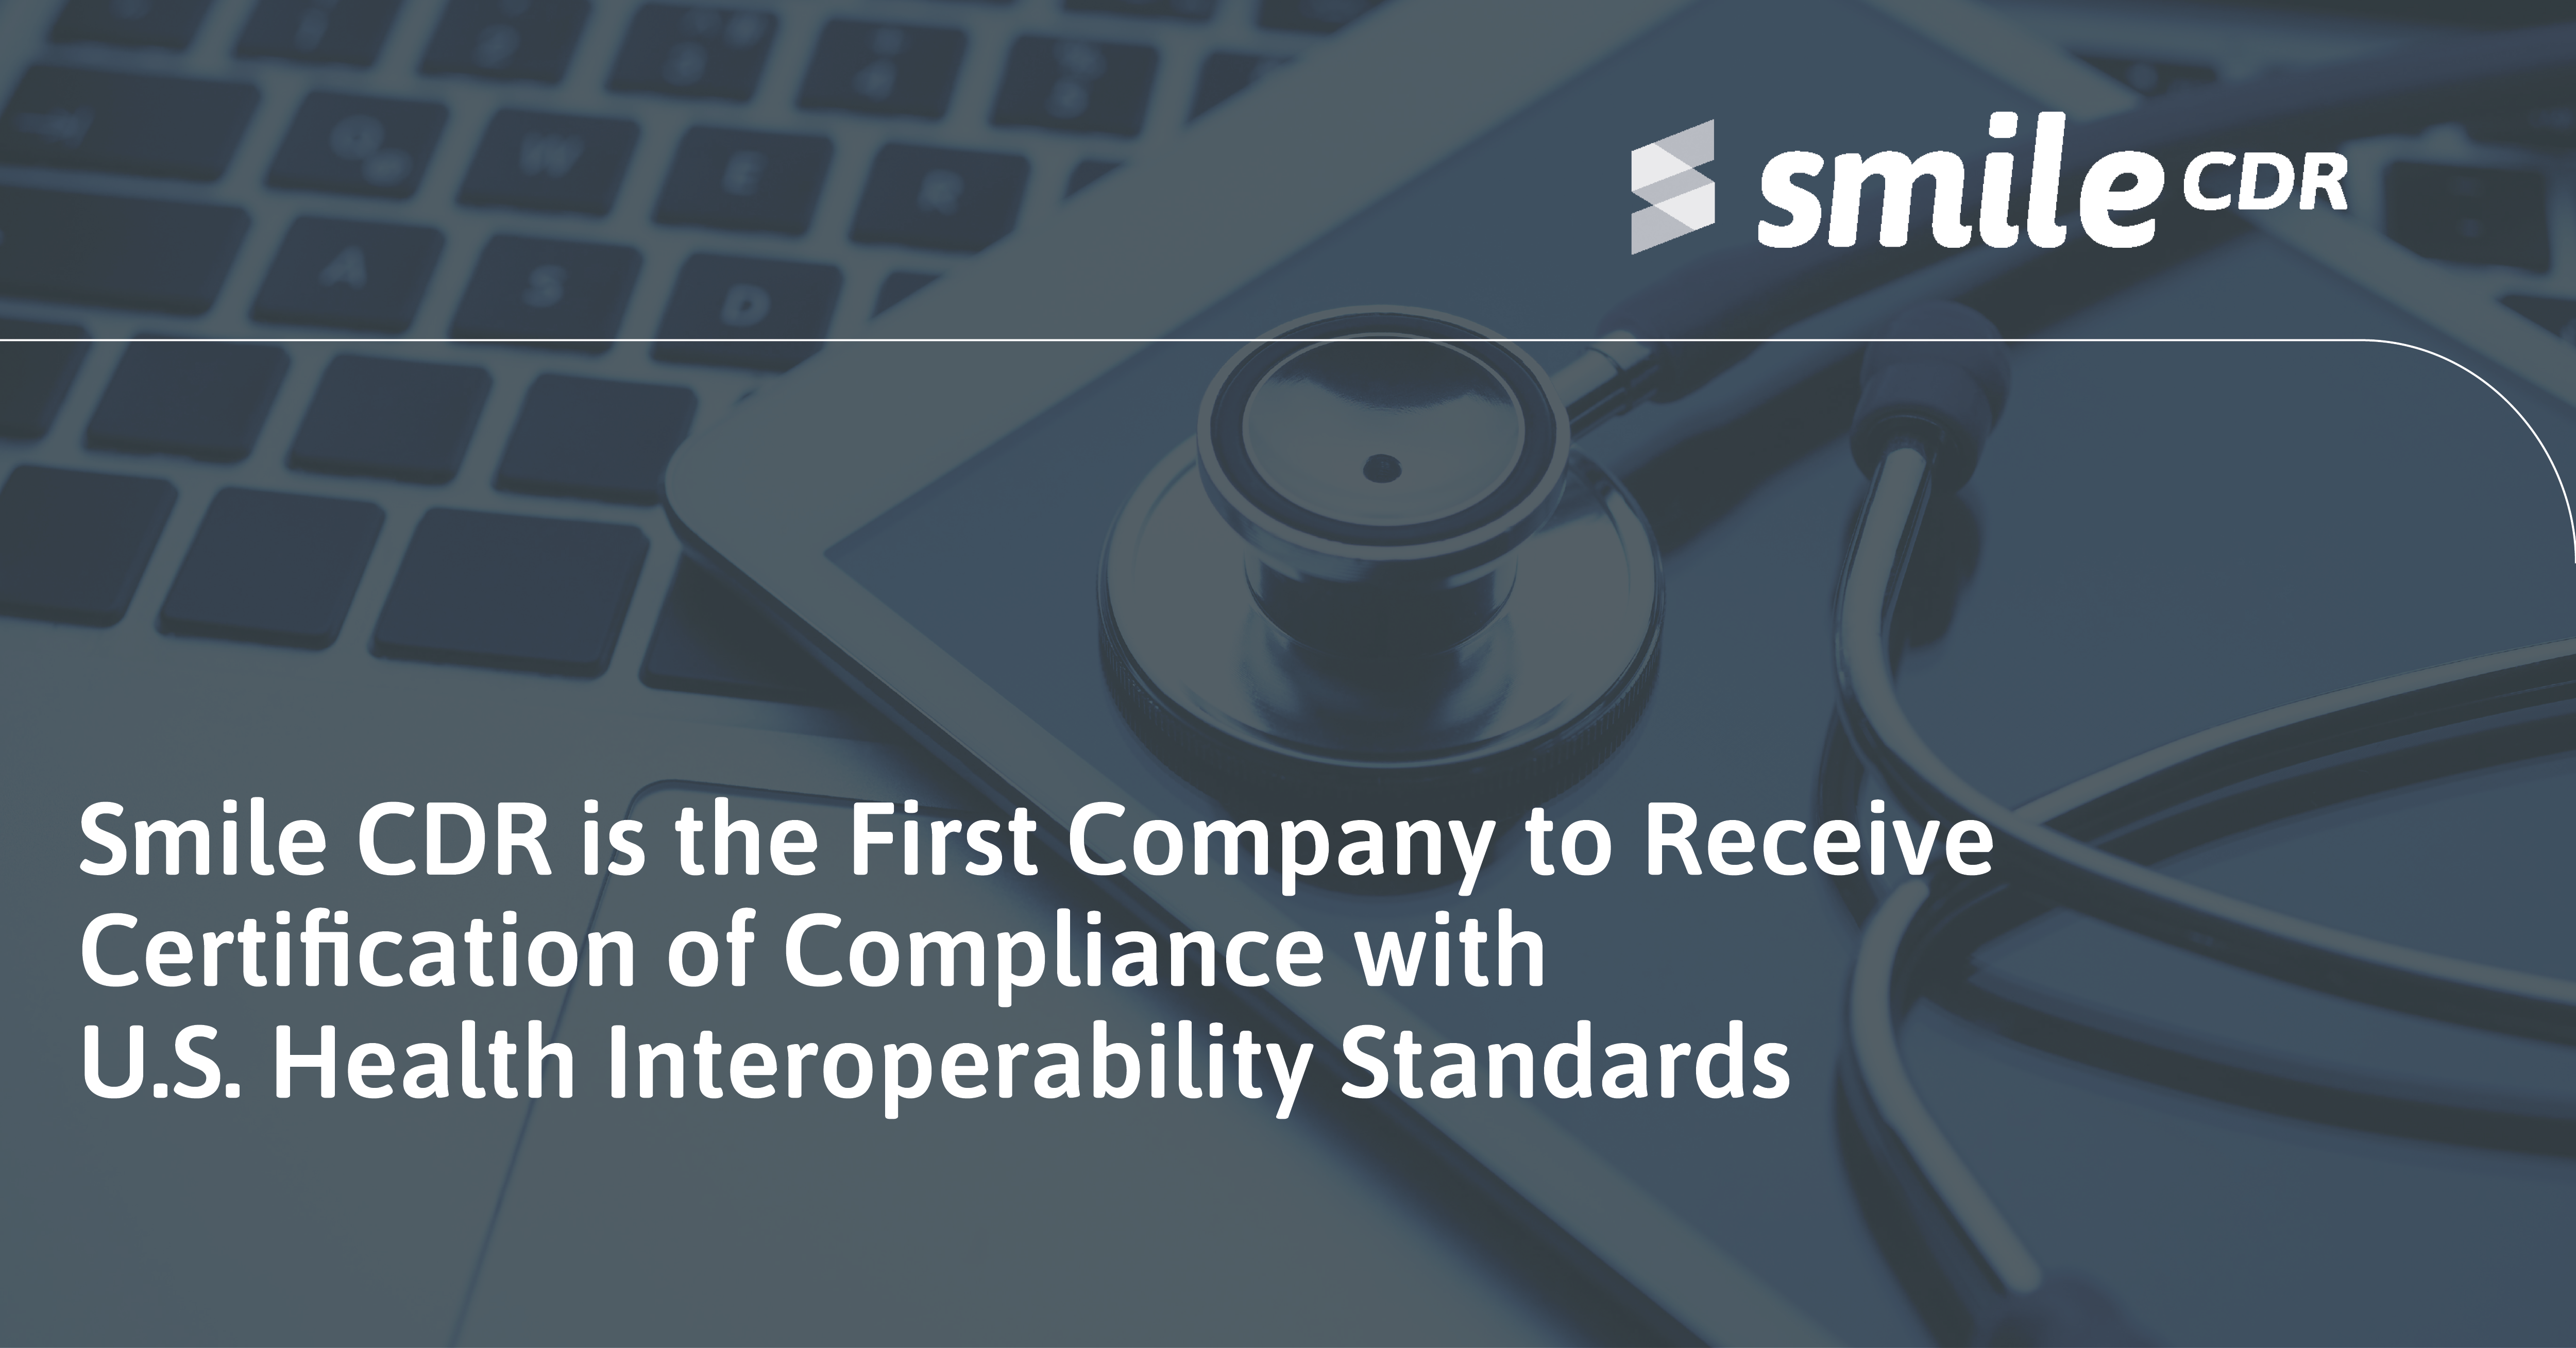 Smile CDR is the First Company to Receive Certification of Compliance with U.S. Health Interoperability Standards